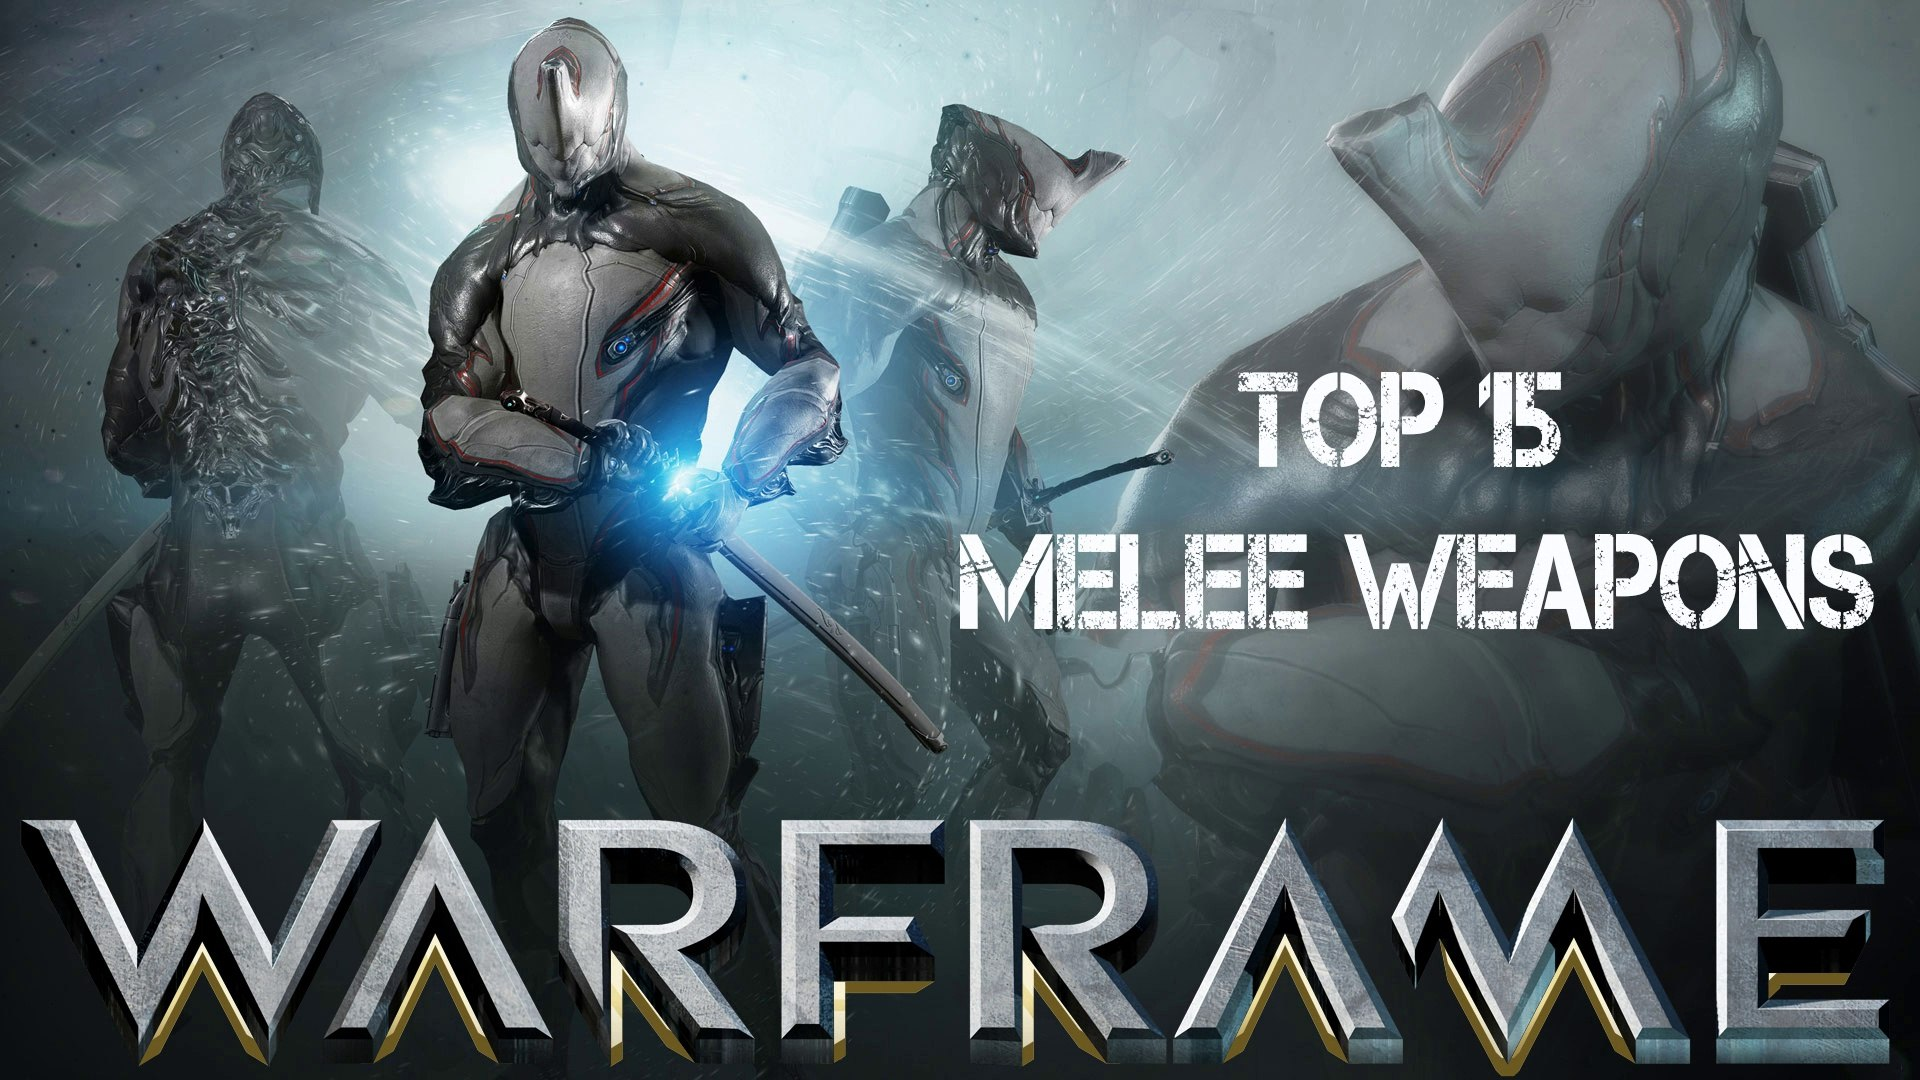 Warframe : My top 15 Melee Weapons 2018